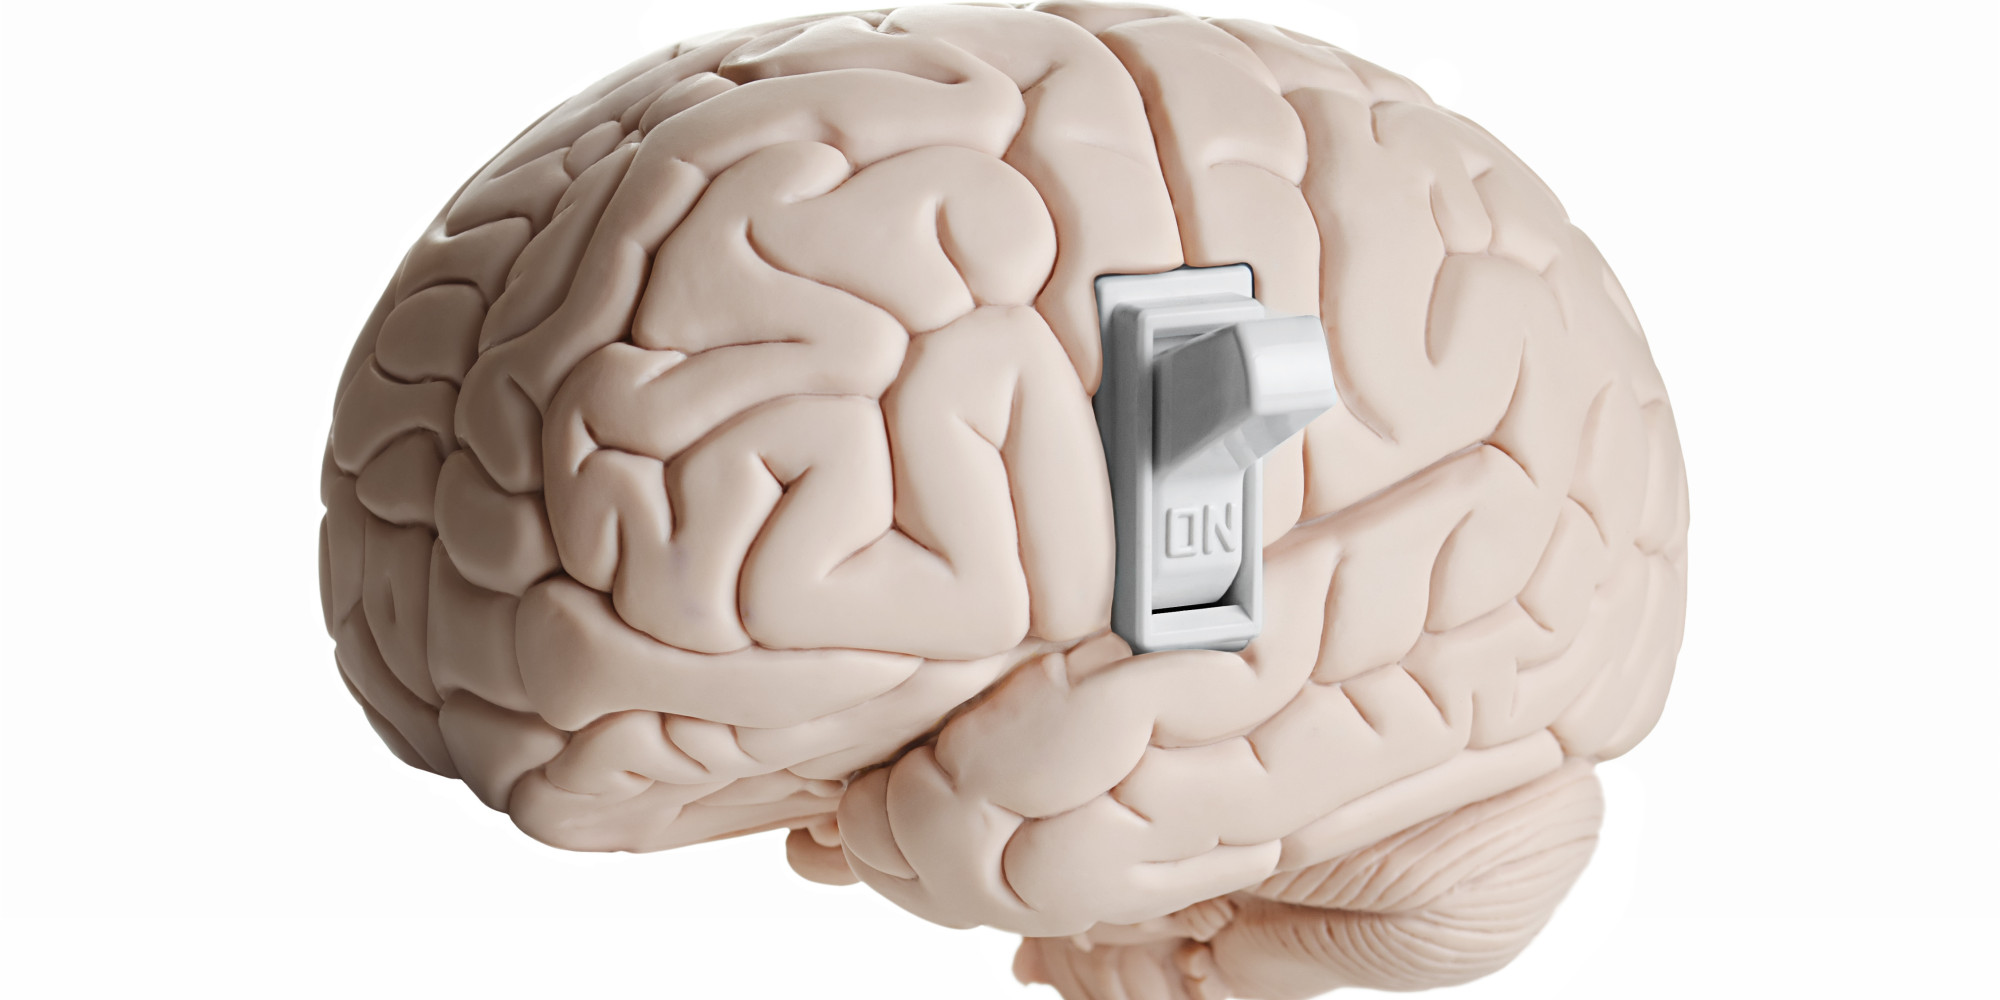 Image result for switch off brain